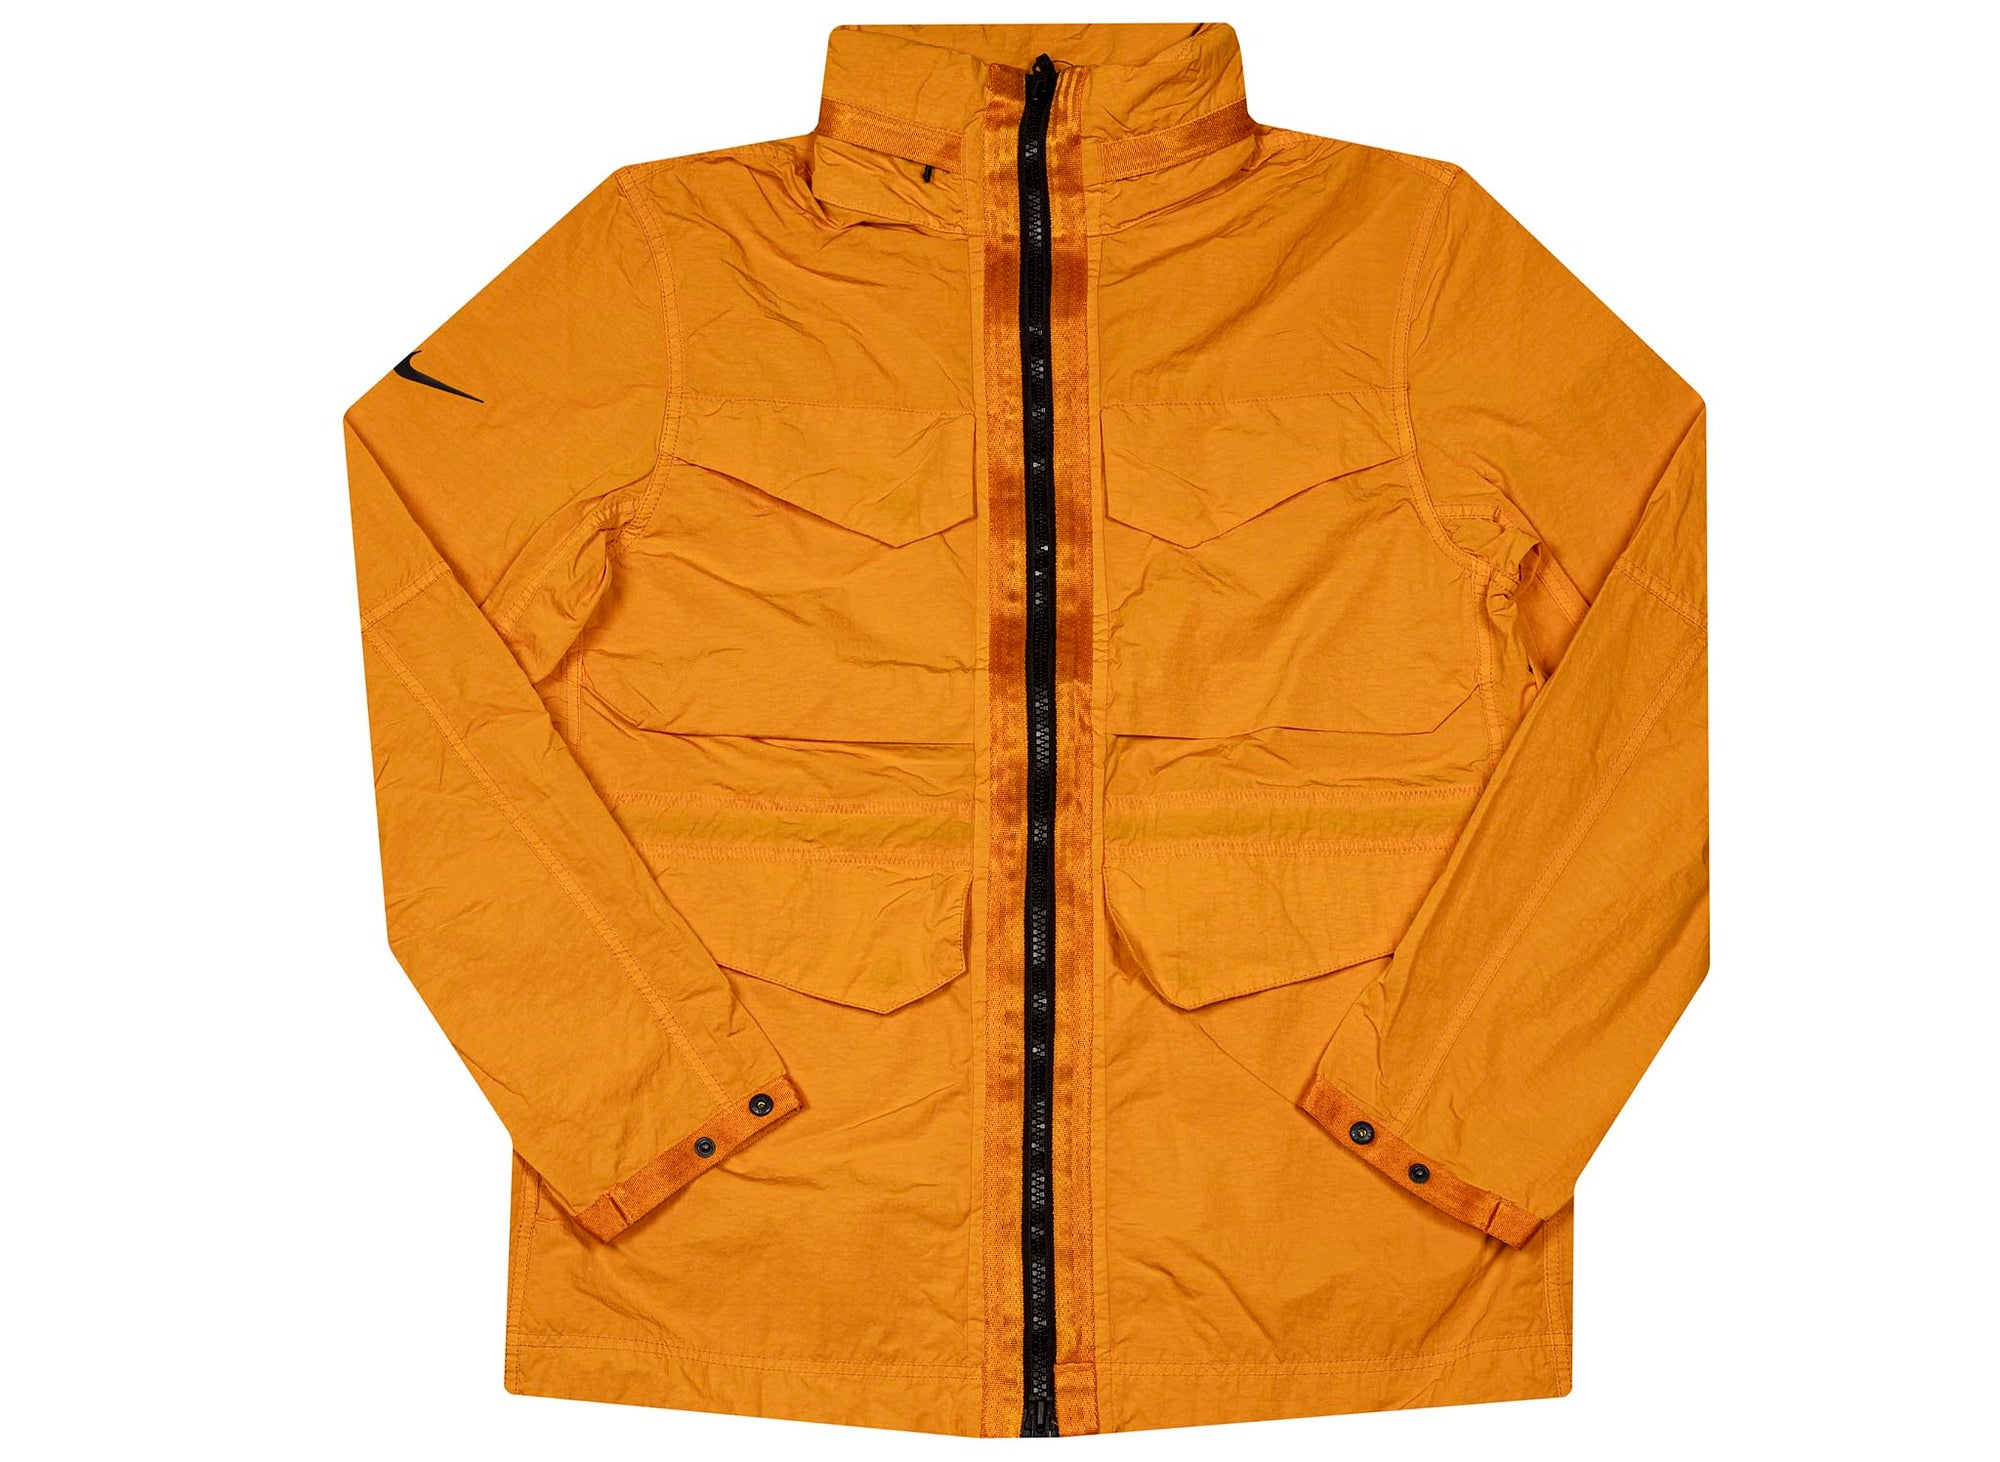 Nike Sportswear Tech Pack Men's Jacket 'Kumquat'